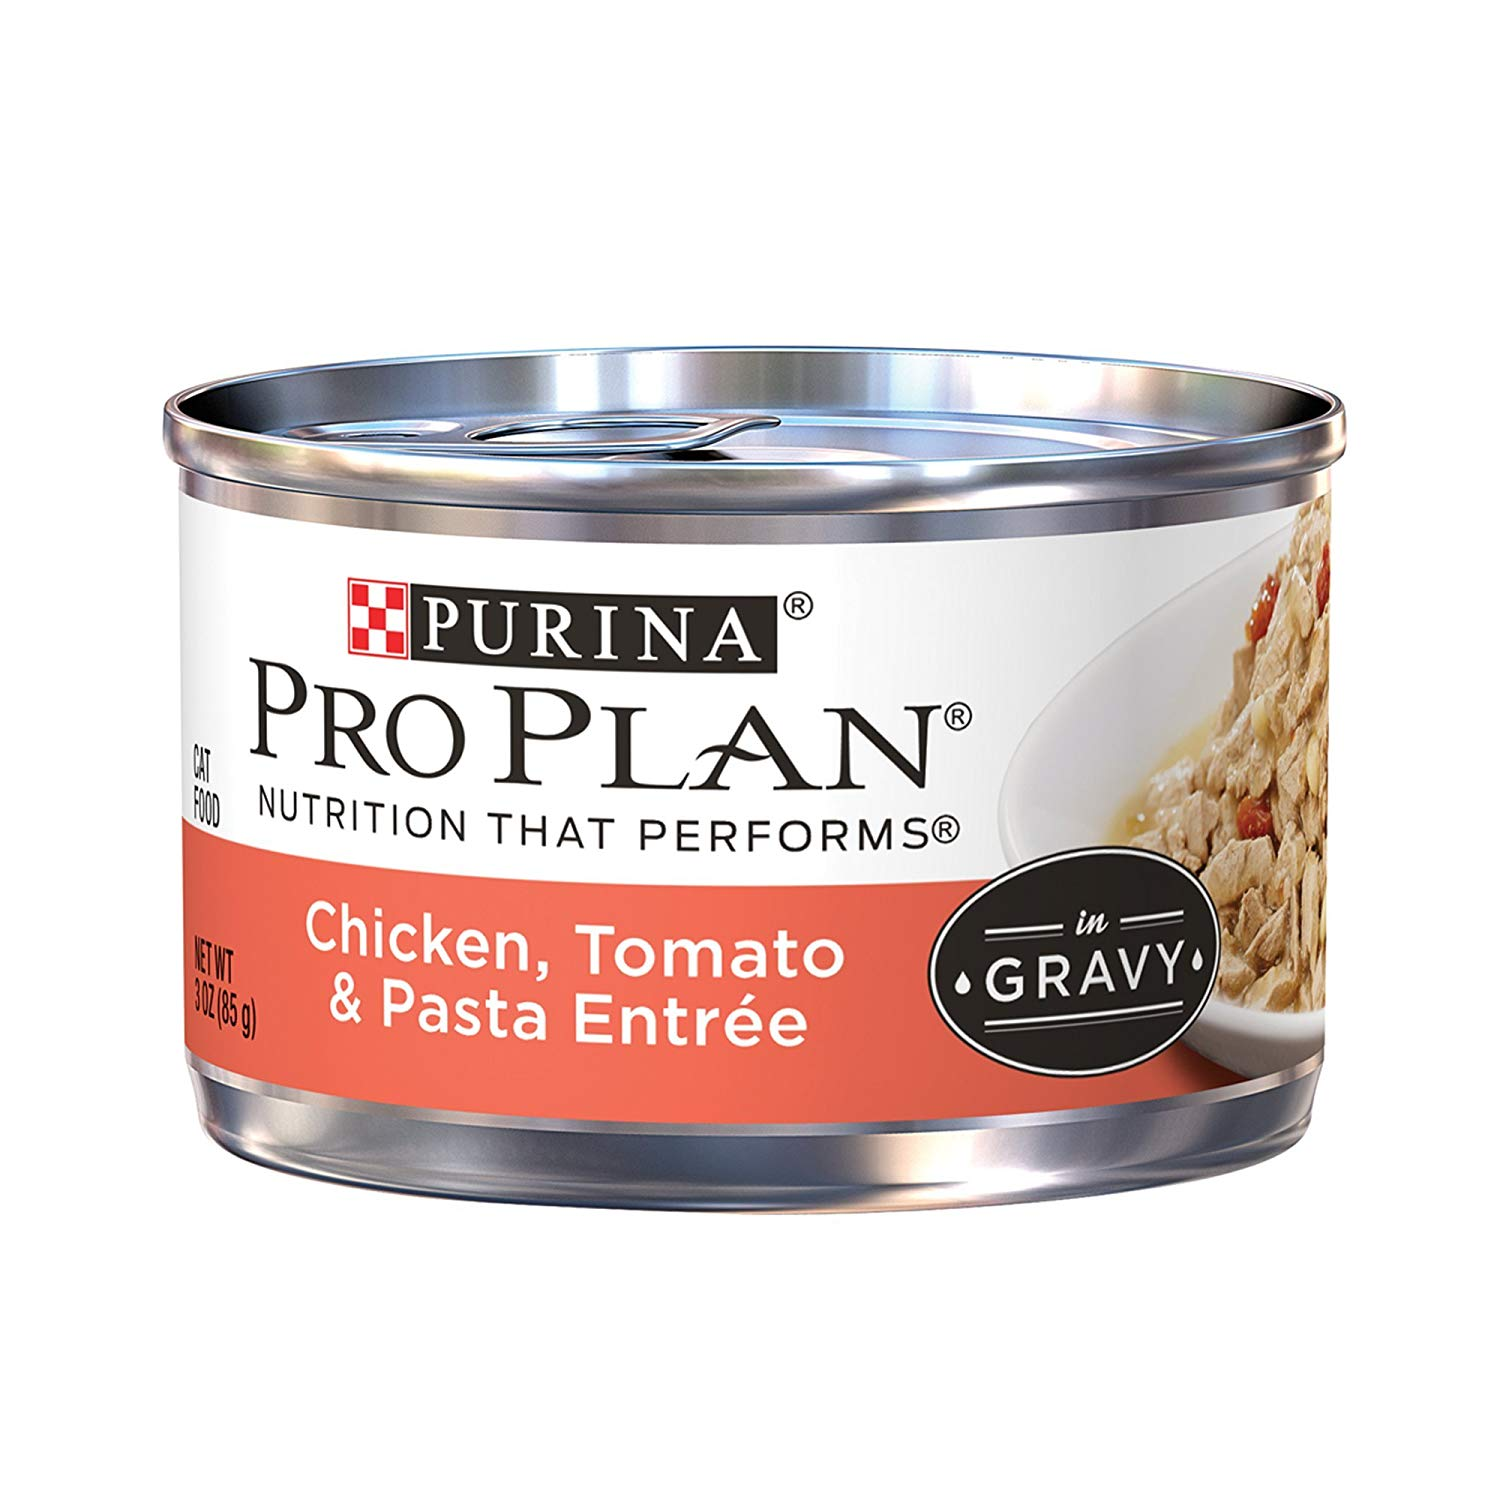 Purina Pro Plan Gravy Canned Adult Cat Food